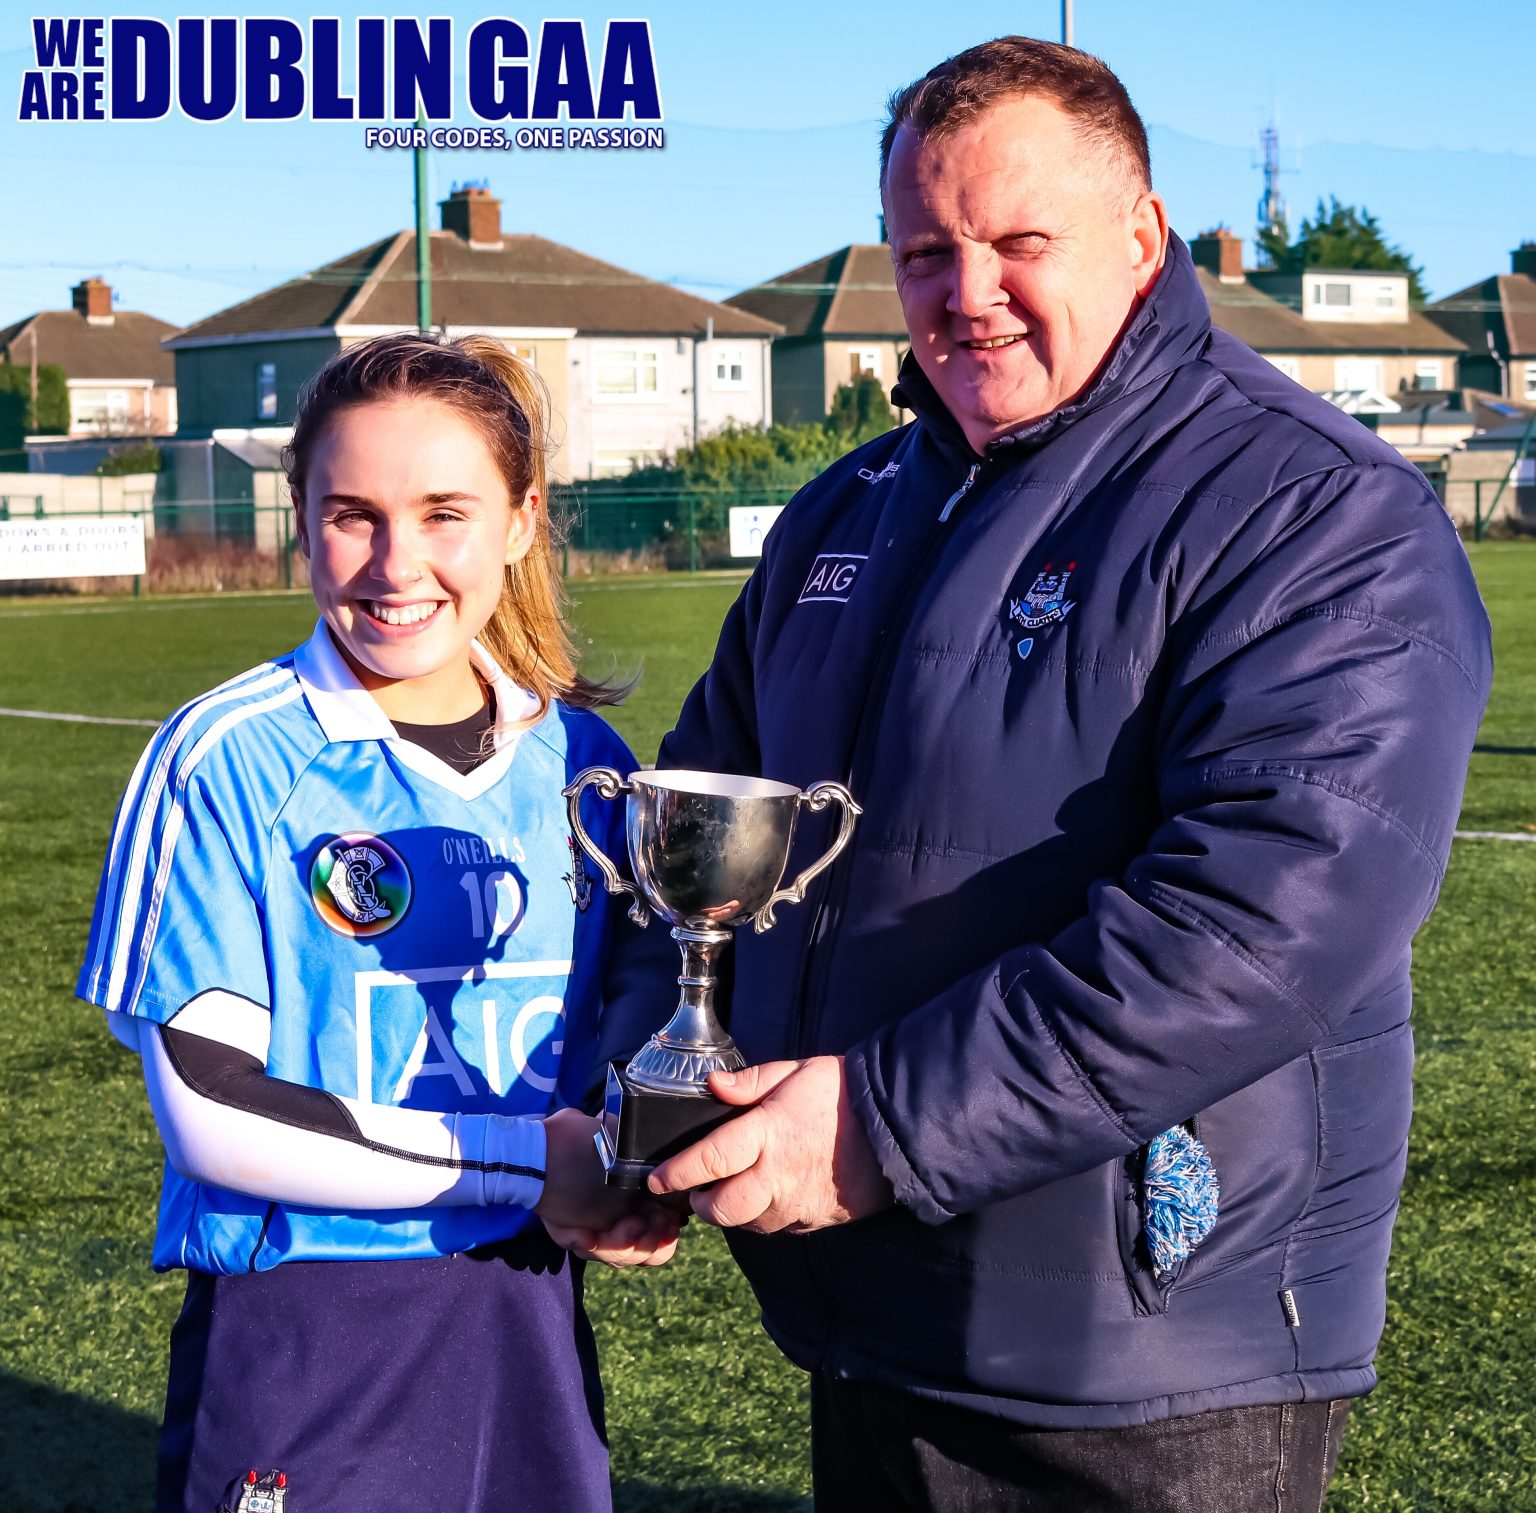 Dublin Captain Sinead Nolan Being Presented With The Dubs Stars Trophy By County Board Chairman Pat Martin